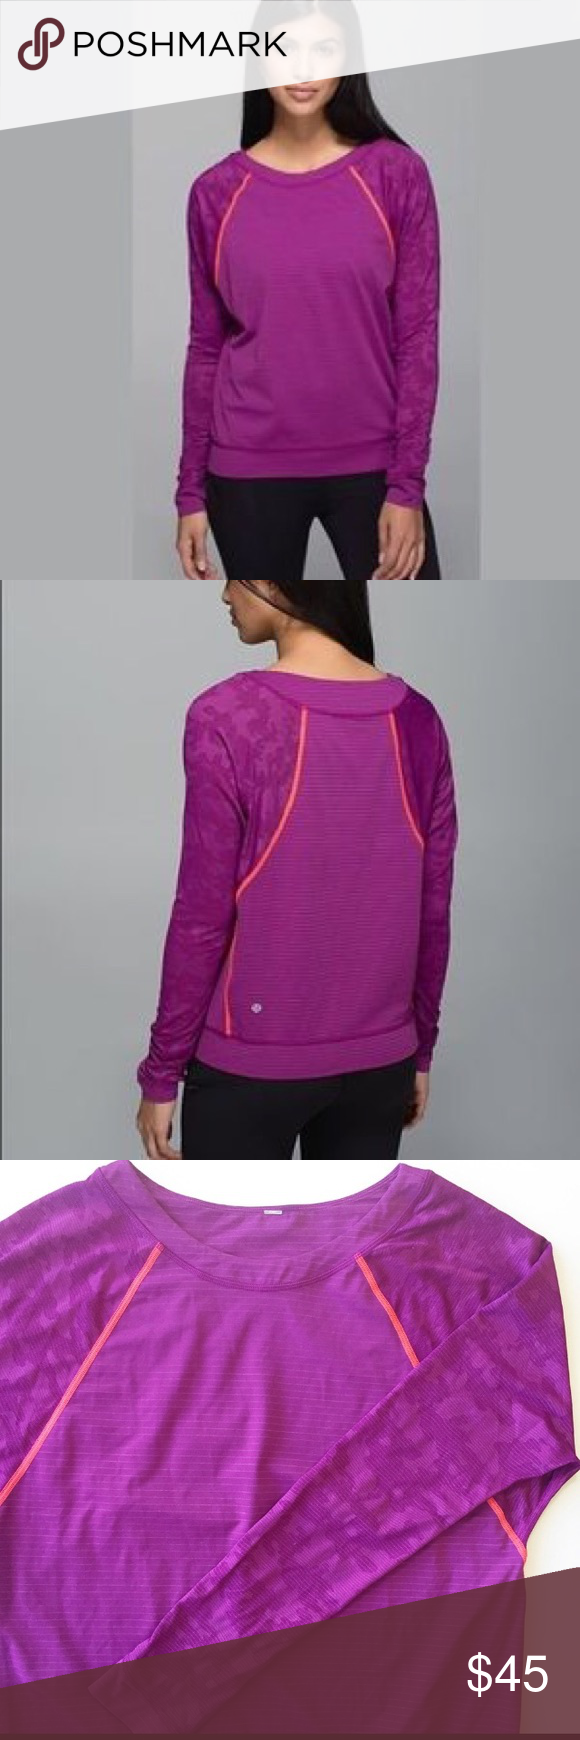 Lululemon Run For Days Long Sleeve Tee with Camo 6 Lululemon Run For Days  Long Sleeve Top Size 6 Regal Plum color with Orange accent stitching. 7fdd3f7e4f2e